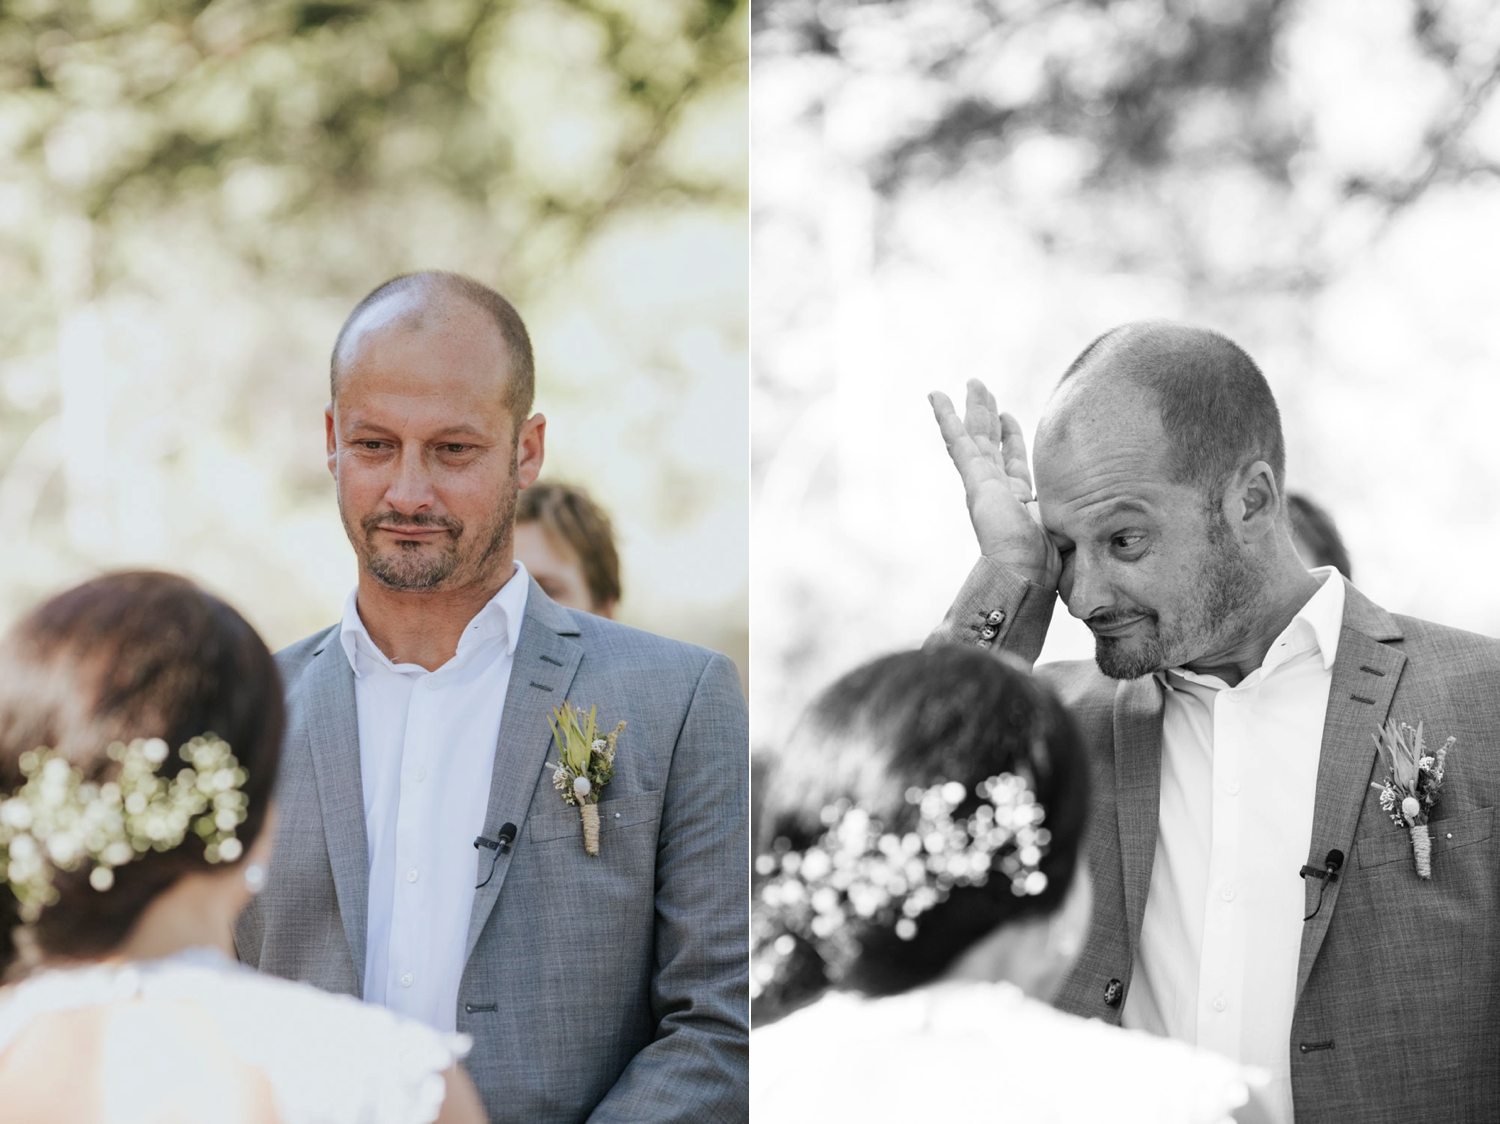 Groom rubbing his eyes and crying tears of joy as he gets married in Tulbagh, in the mountains close to Cape Town, South Africa.